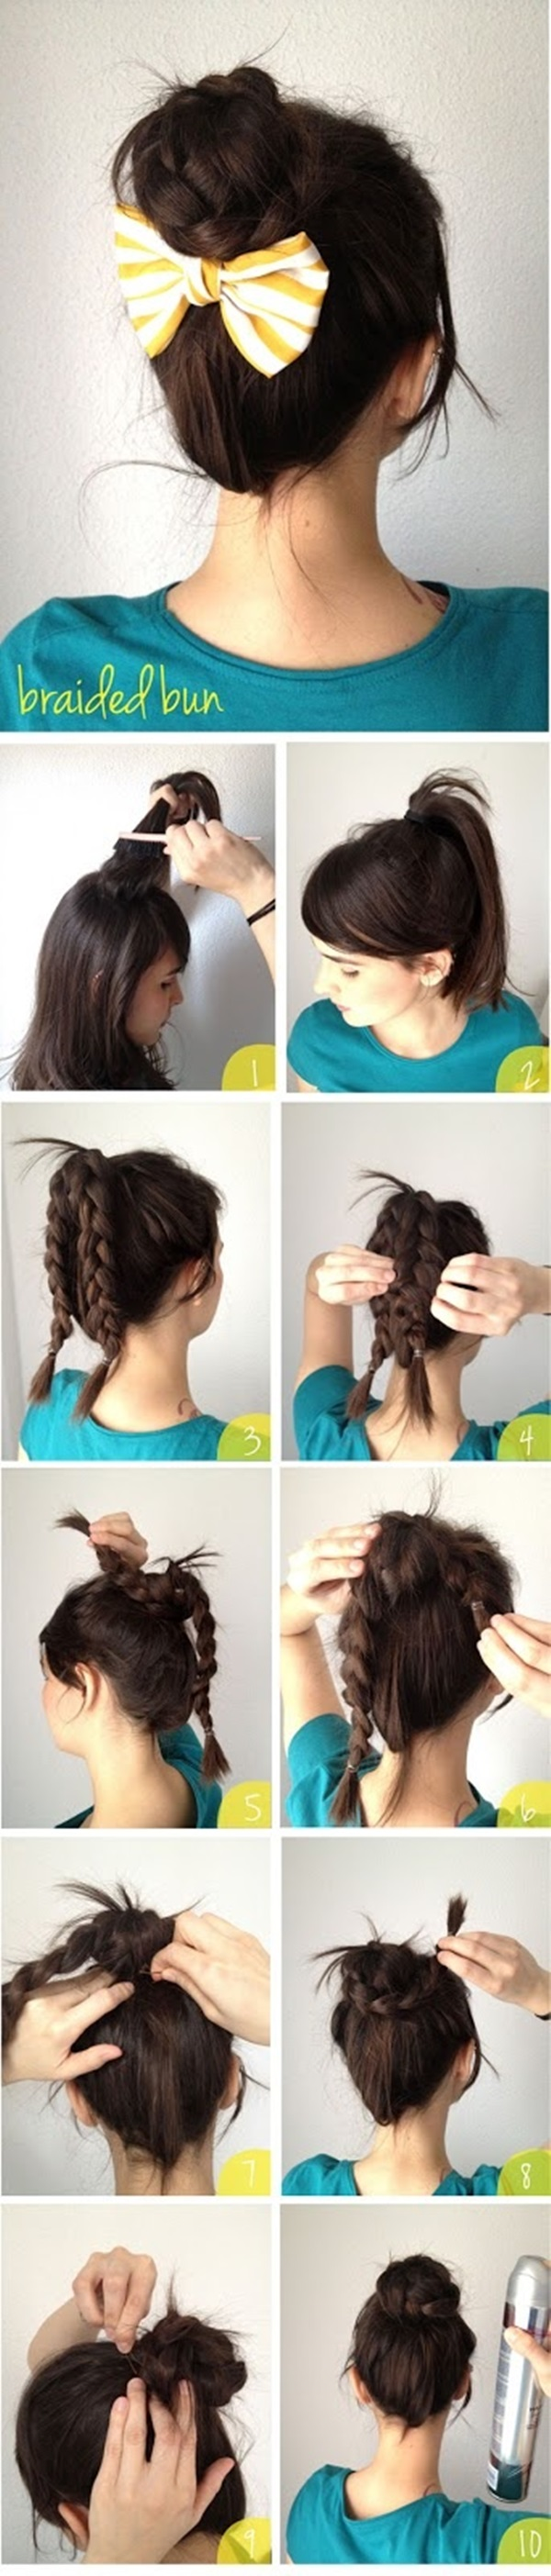 Simple Five Minute Hairstyles (16)